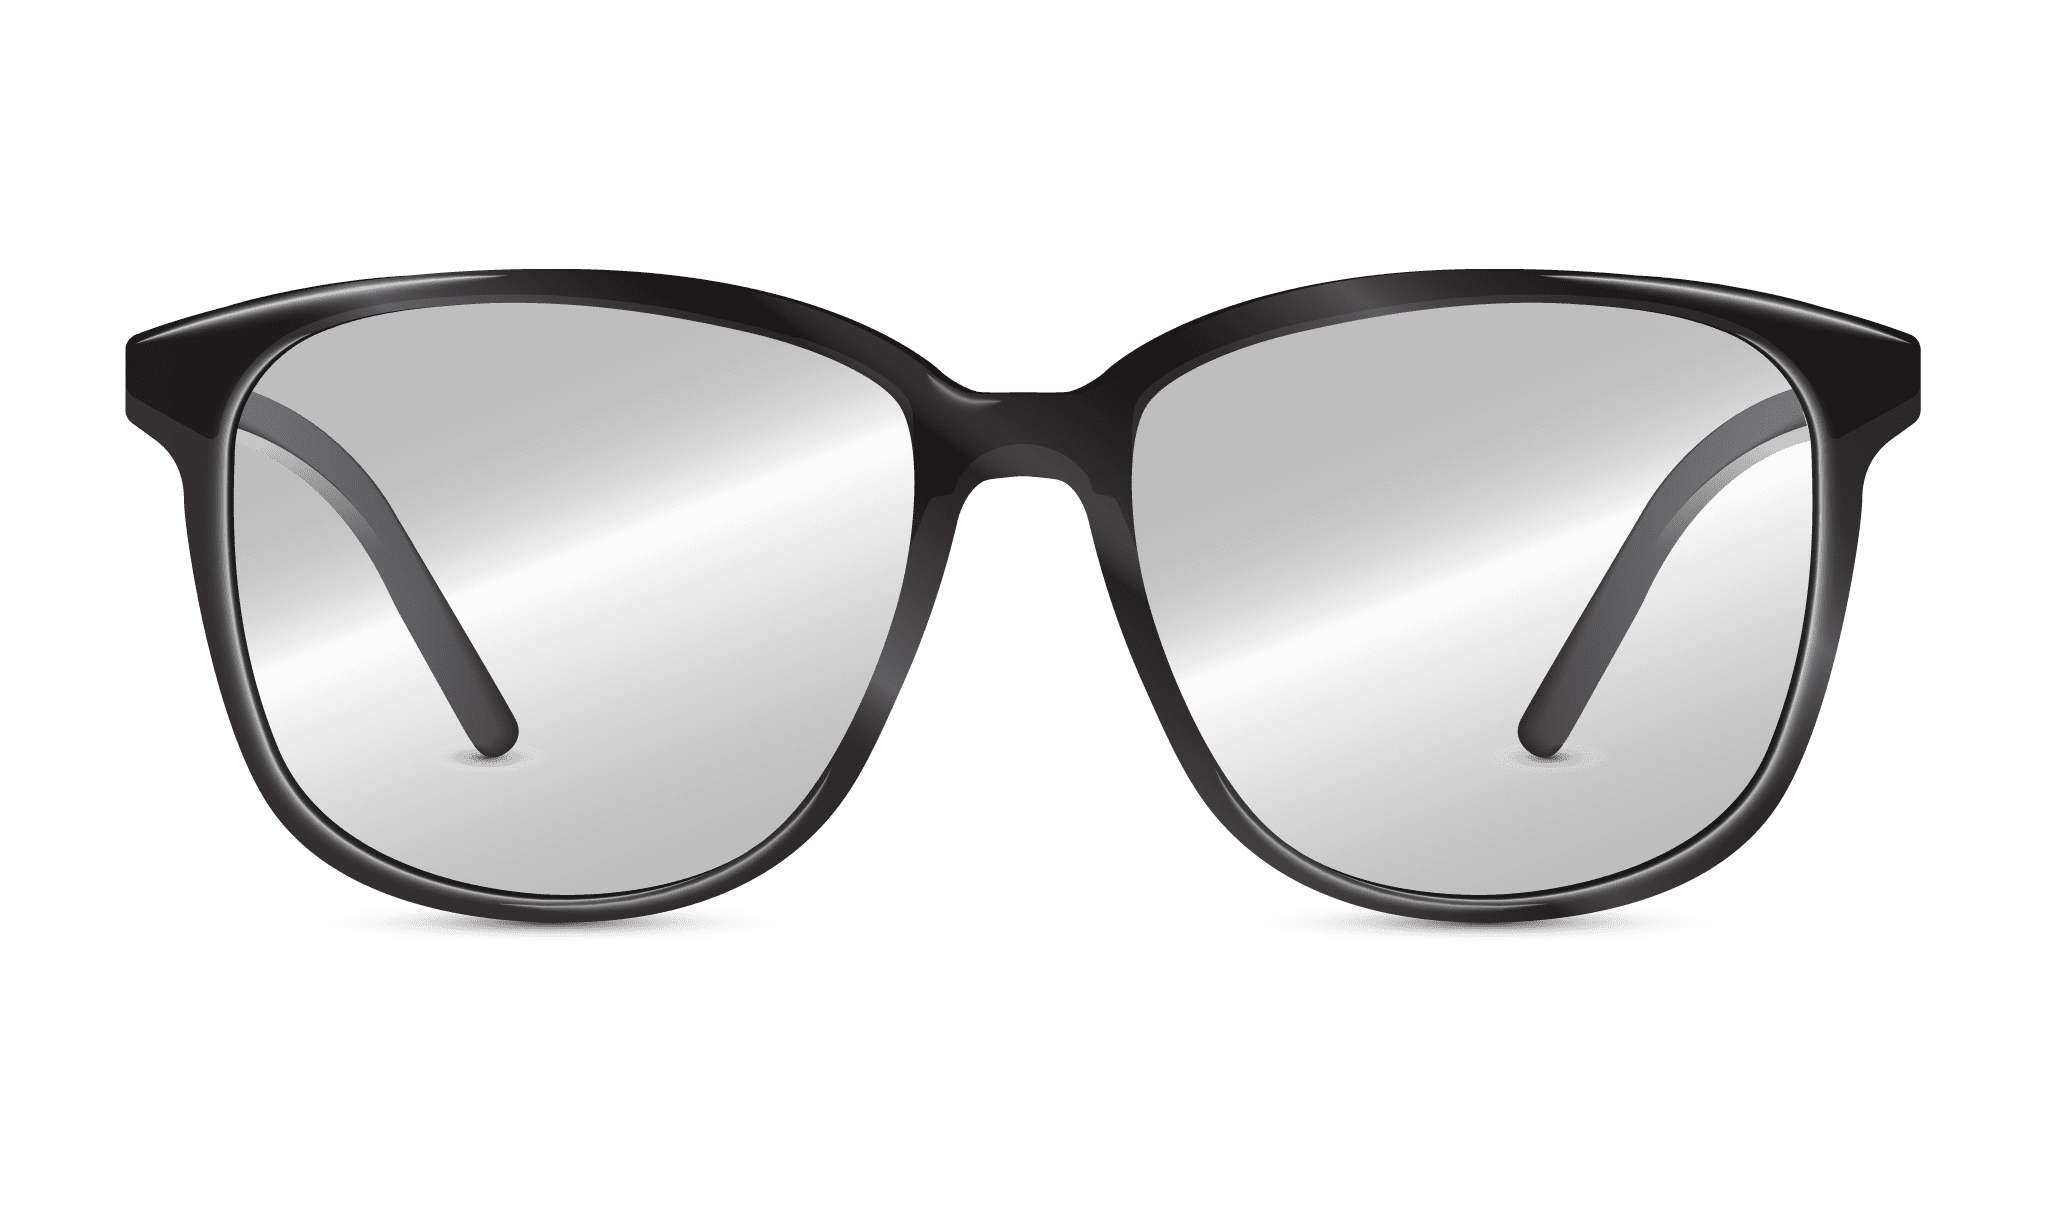 Kenmark Glasses